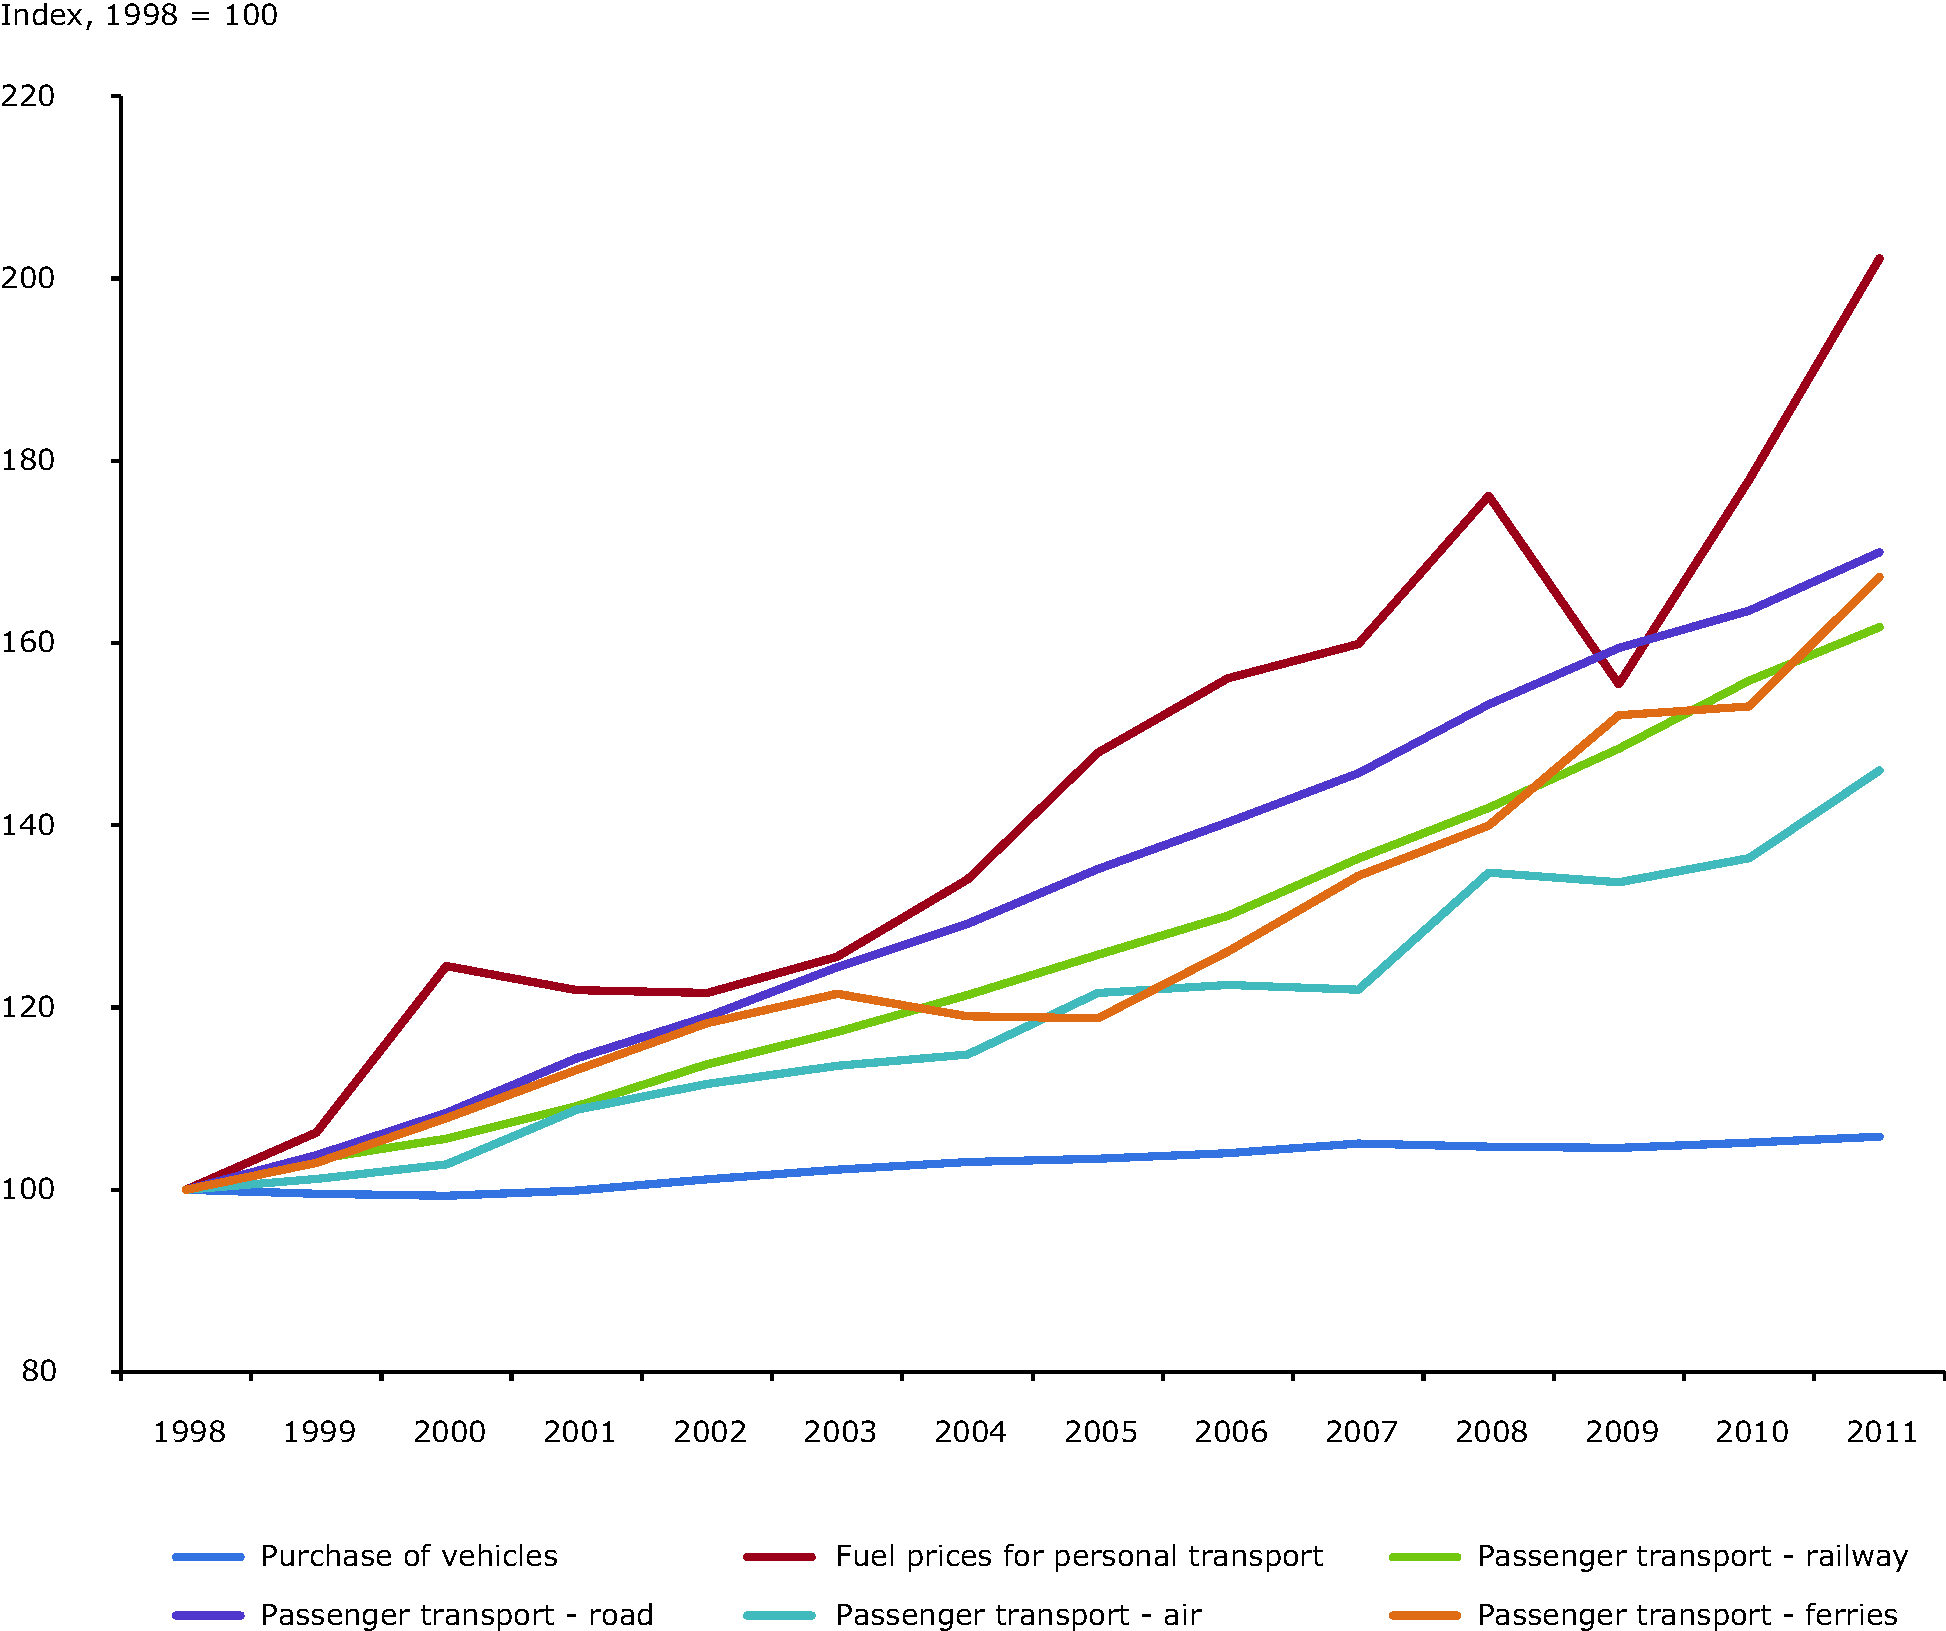 Indexed consumer prices for passenger transport